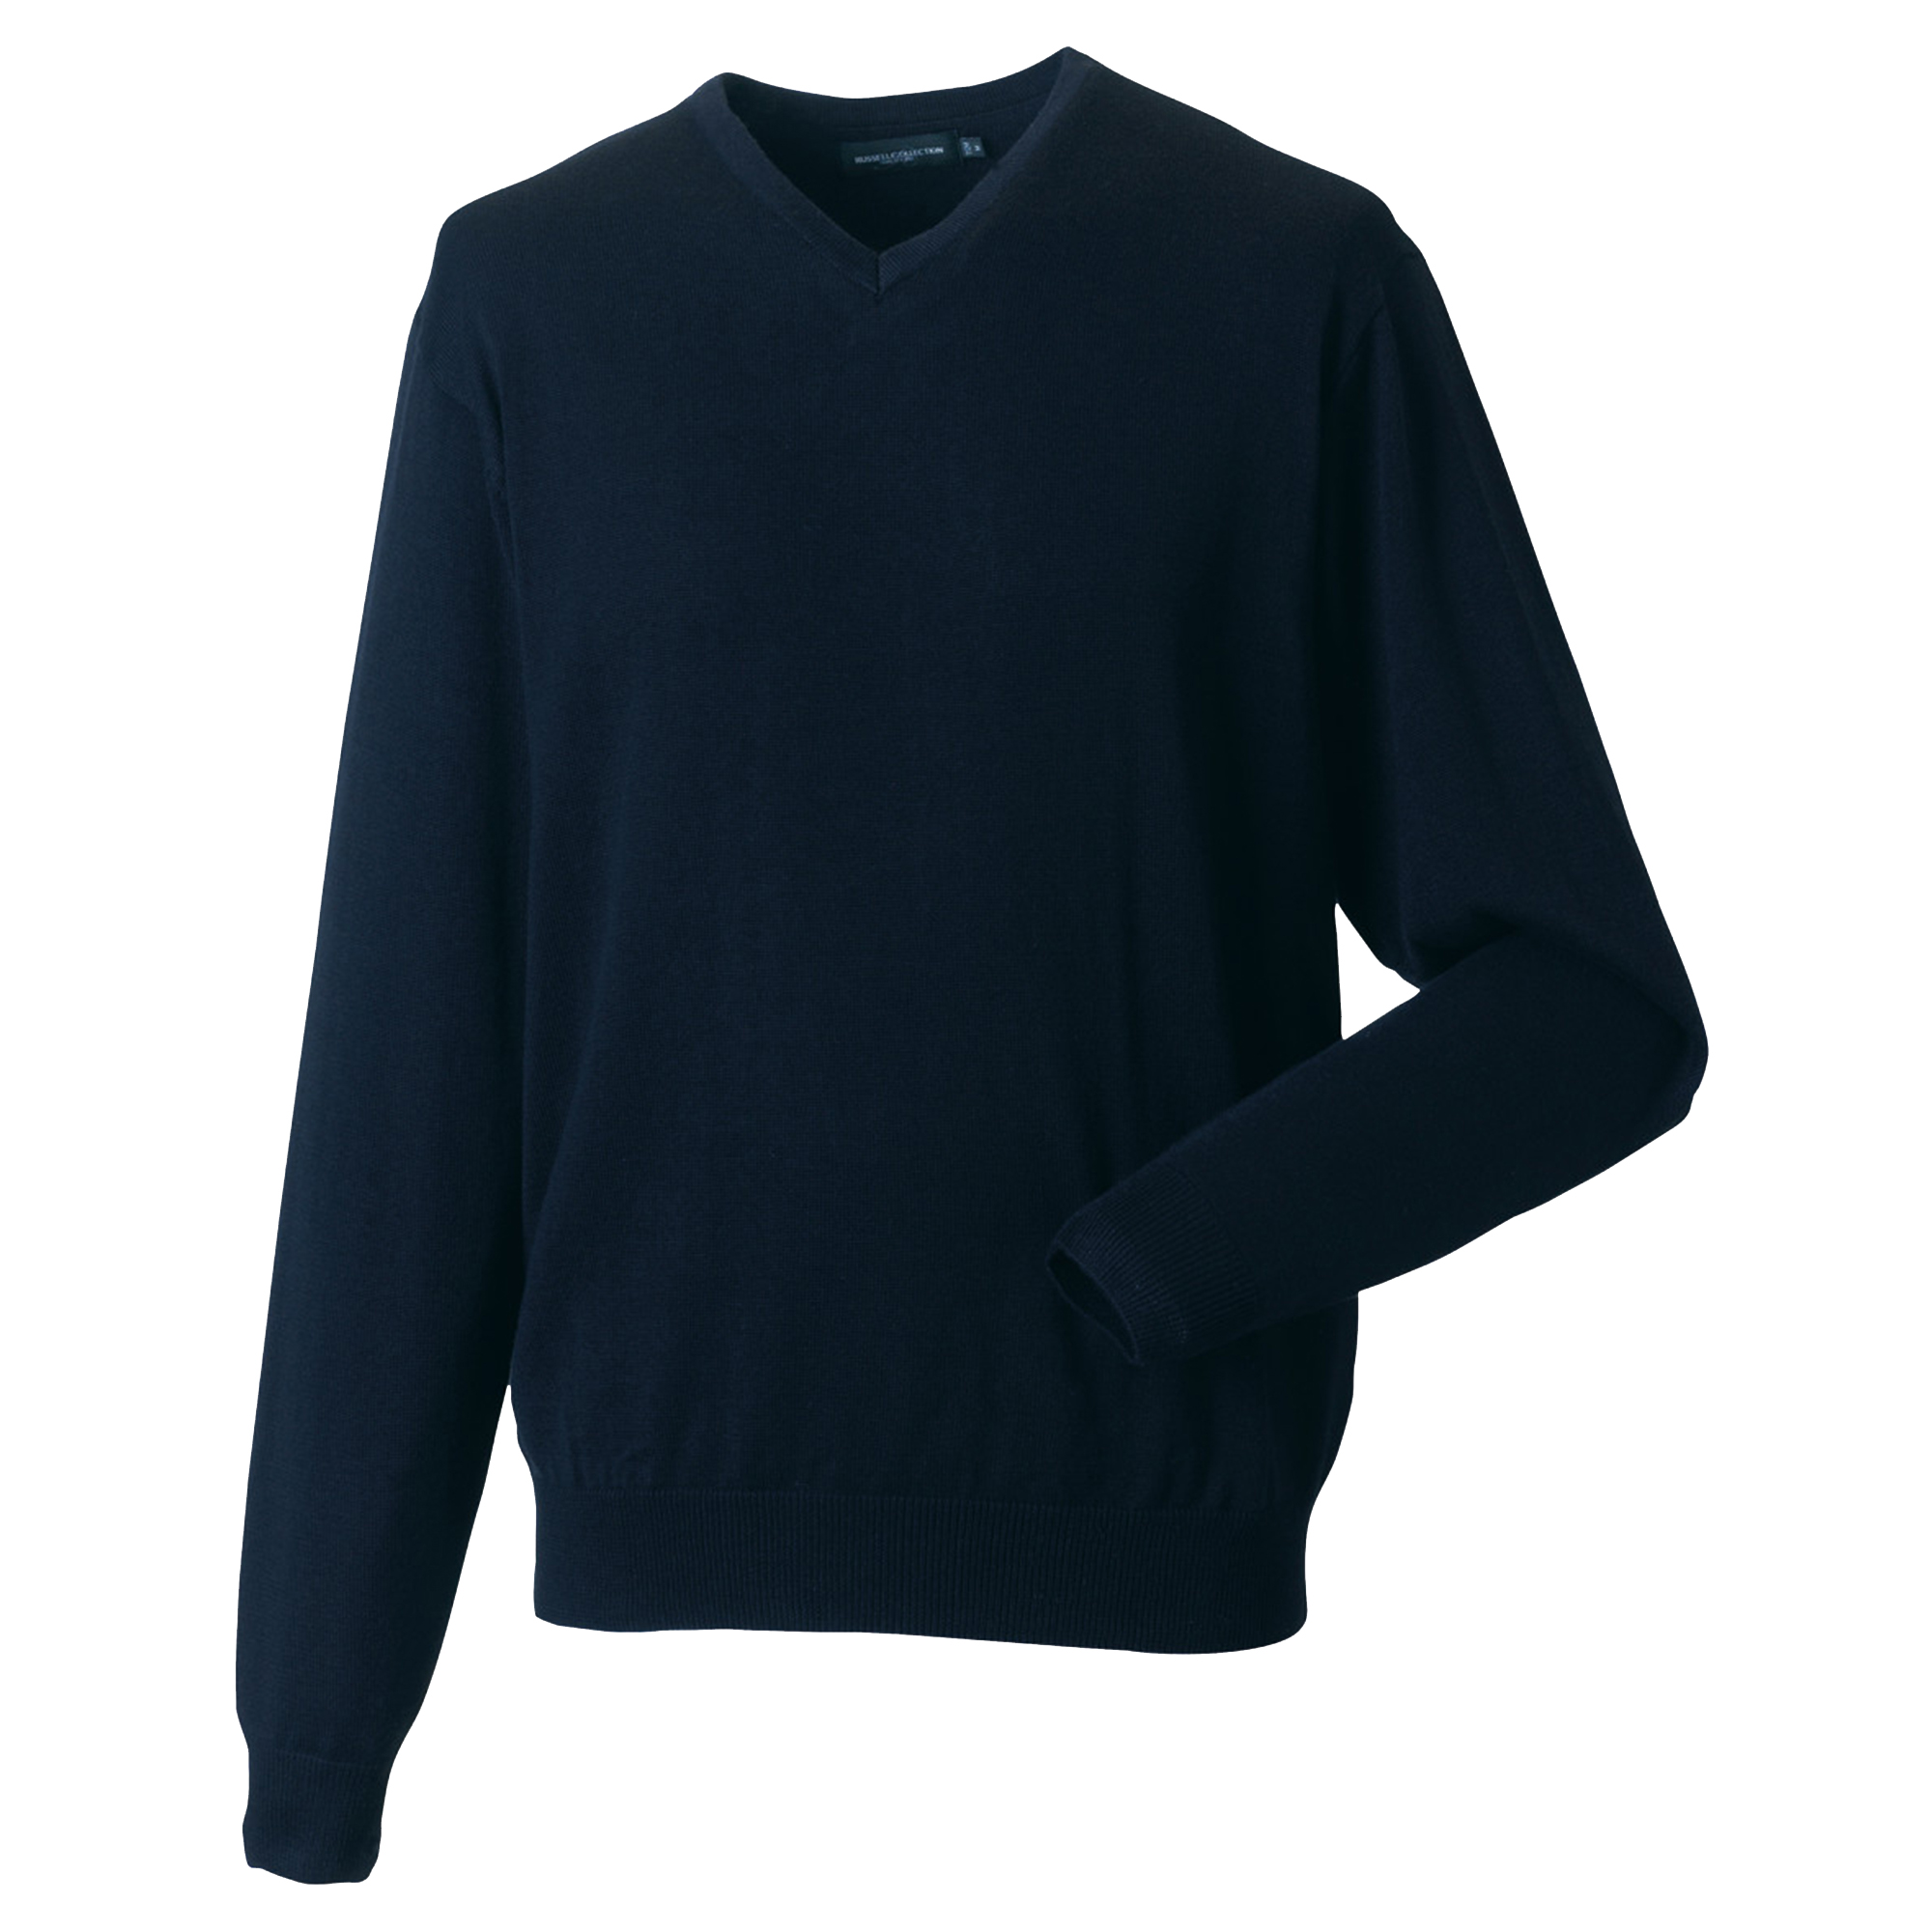 miniature 7 - Russell Collection - Pullover à col en V - Homme (XS-4XL) 2 couleurs (BC1012)